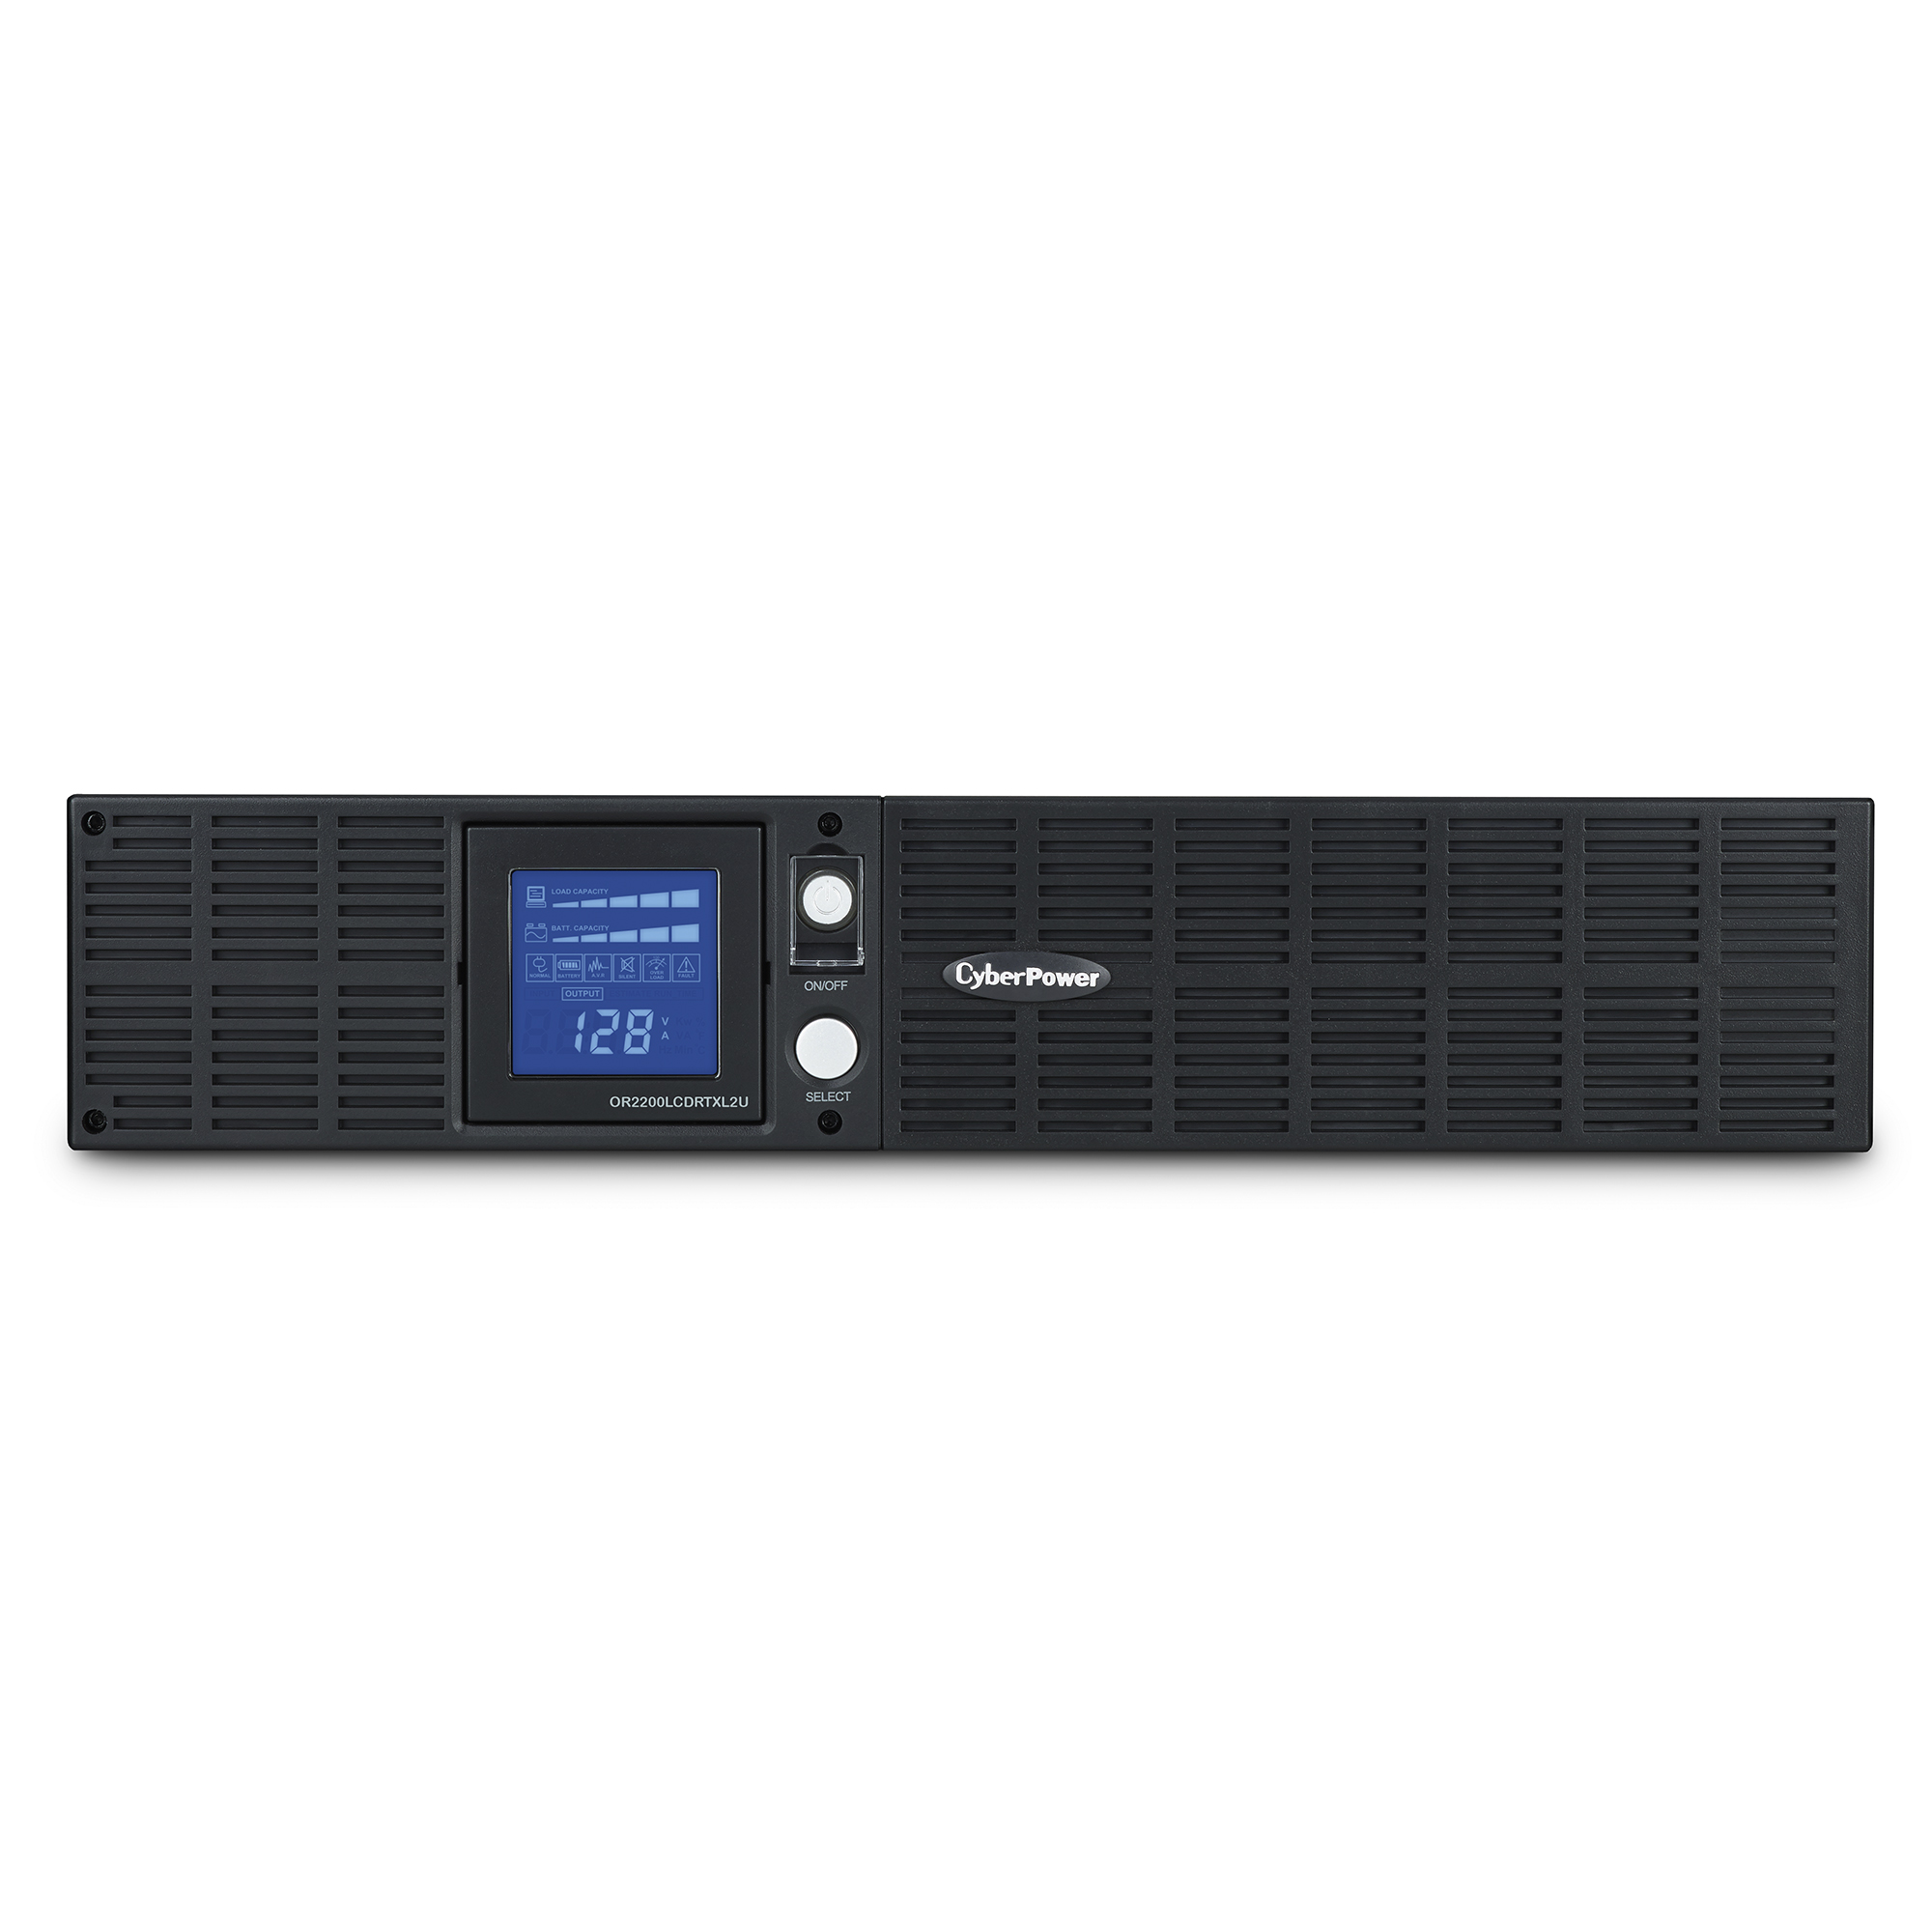 Or2200lcdrtxl2u Smart App Lcd Ups Series Product Details Specs Power Supplies And Voltage Regulators For Lowvoltages Heaters Downloads Cyberpower